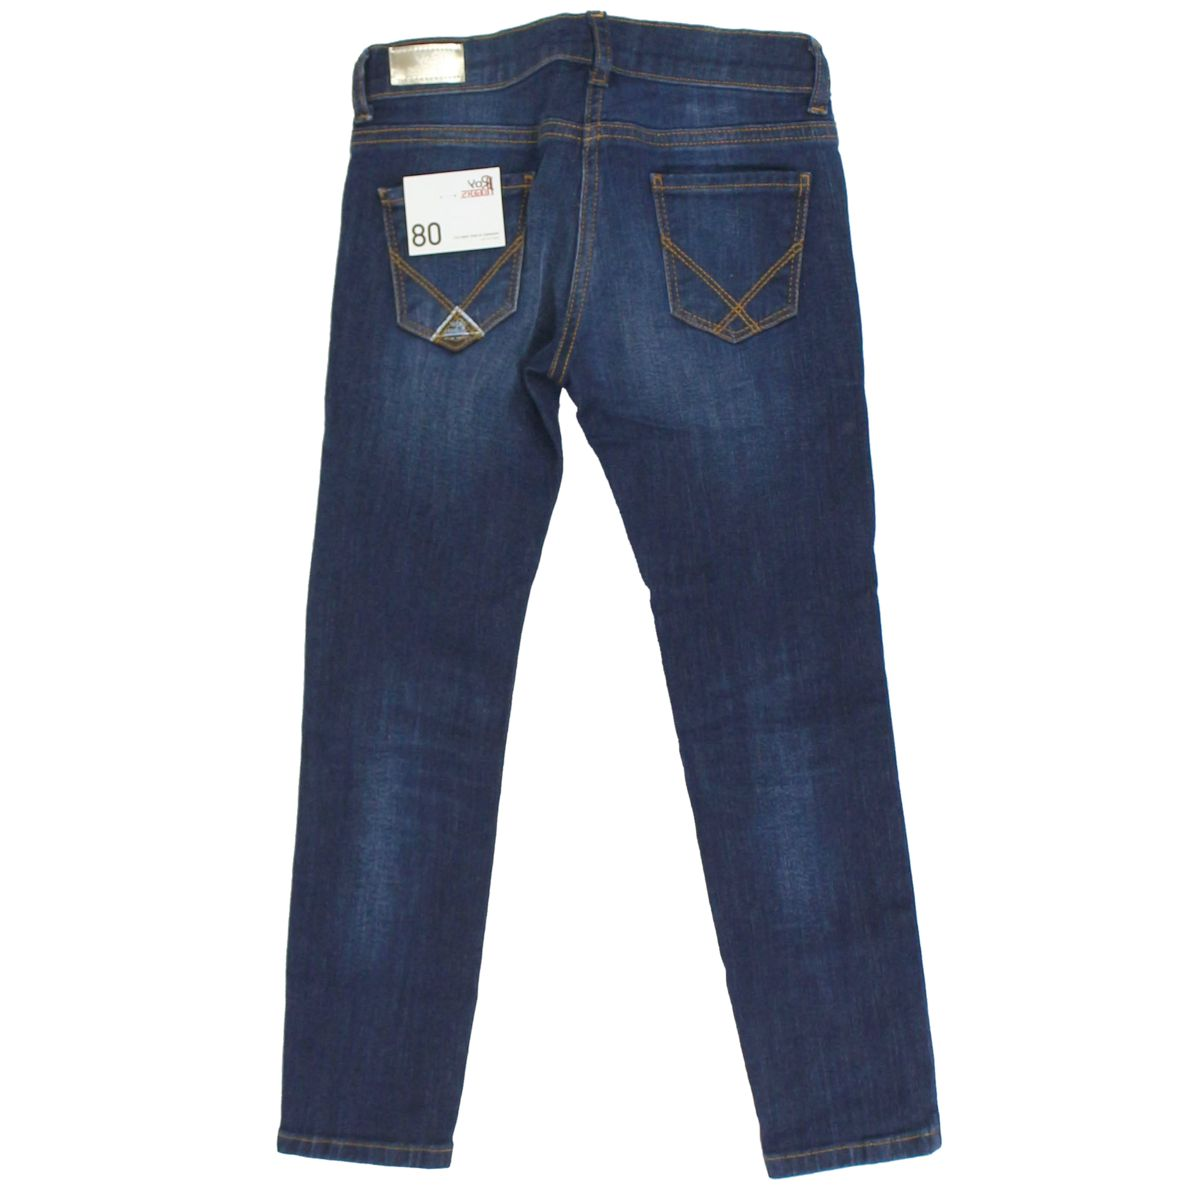 Gwenda jeans Dark denim ROY ROGER'S